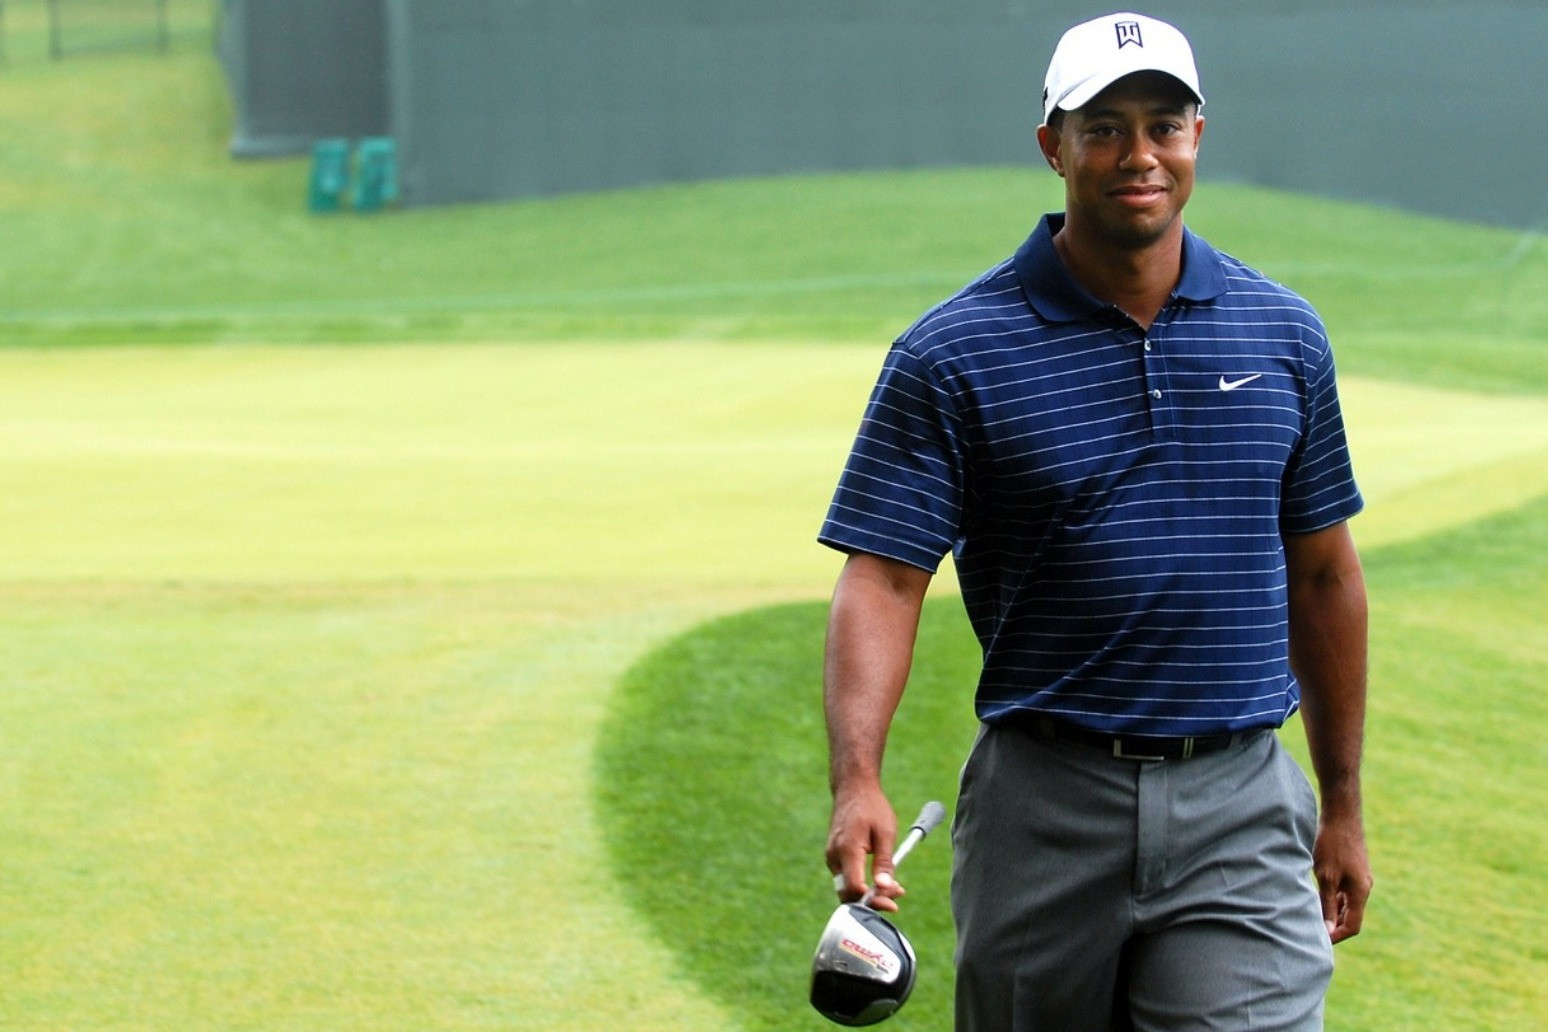 Woods confirms participation at the Open Championship